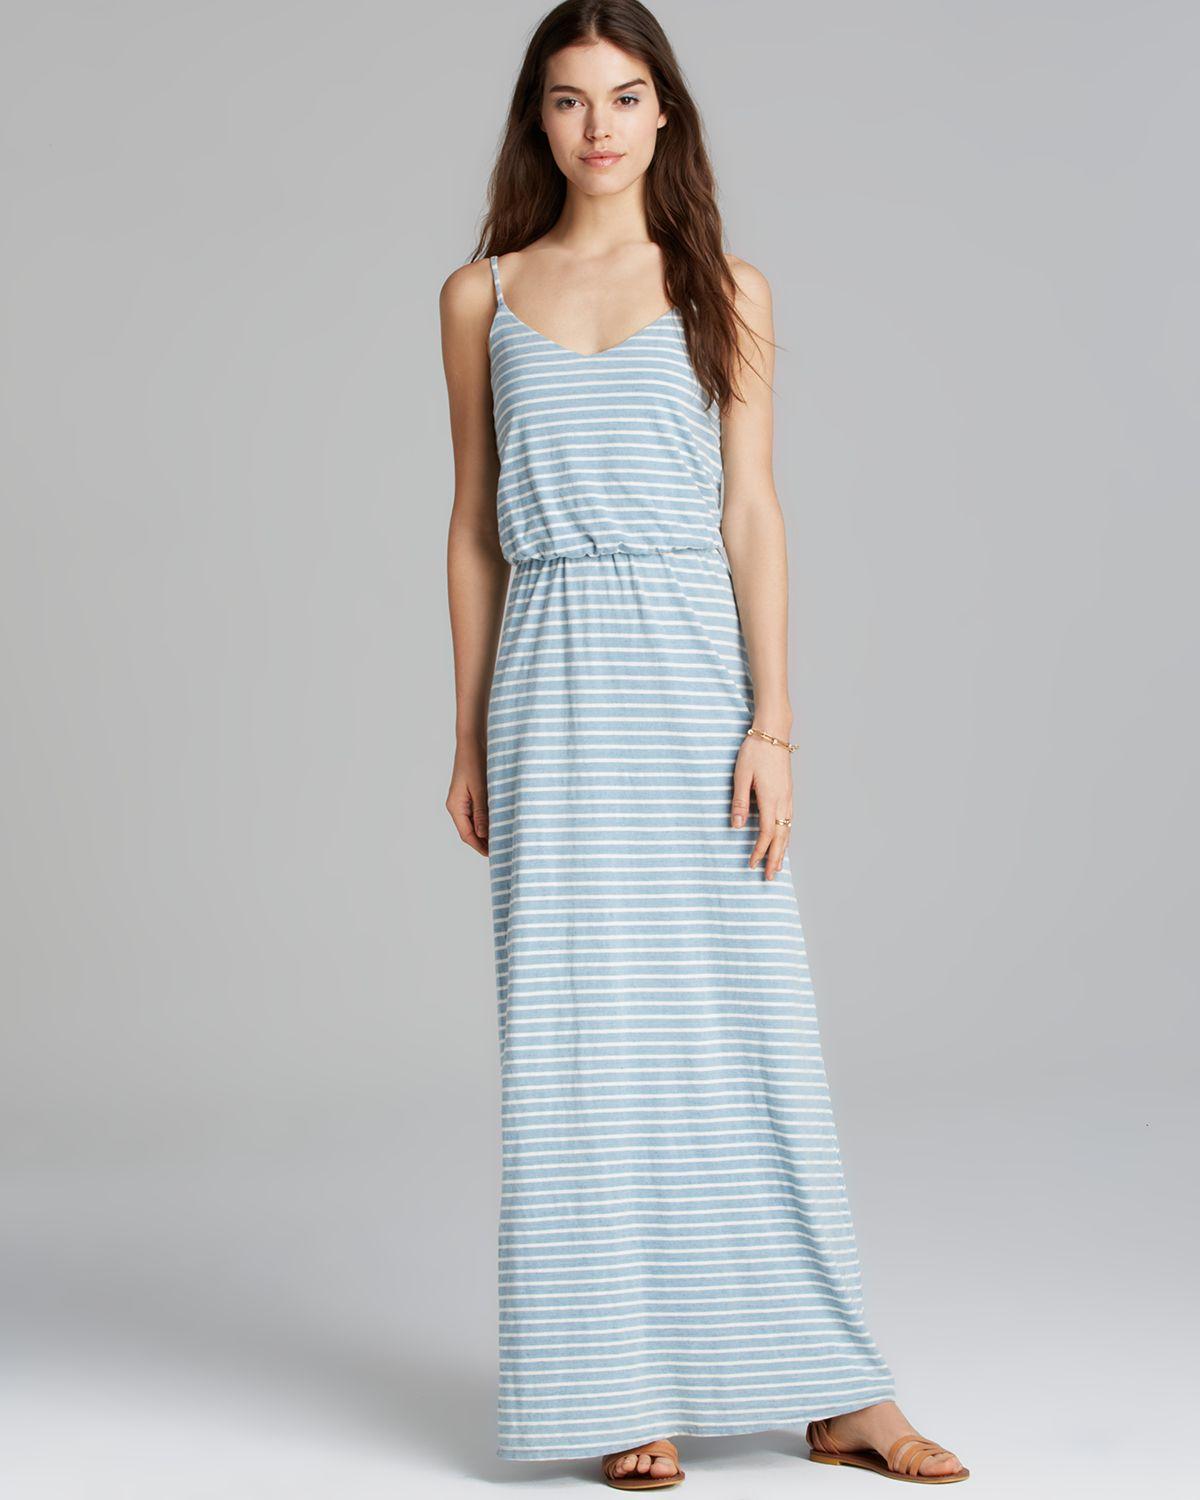 Splendid Maxi Dress Venice Stripe in Blue | Lyst